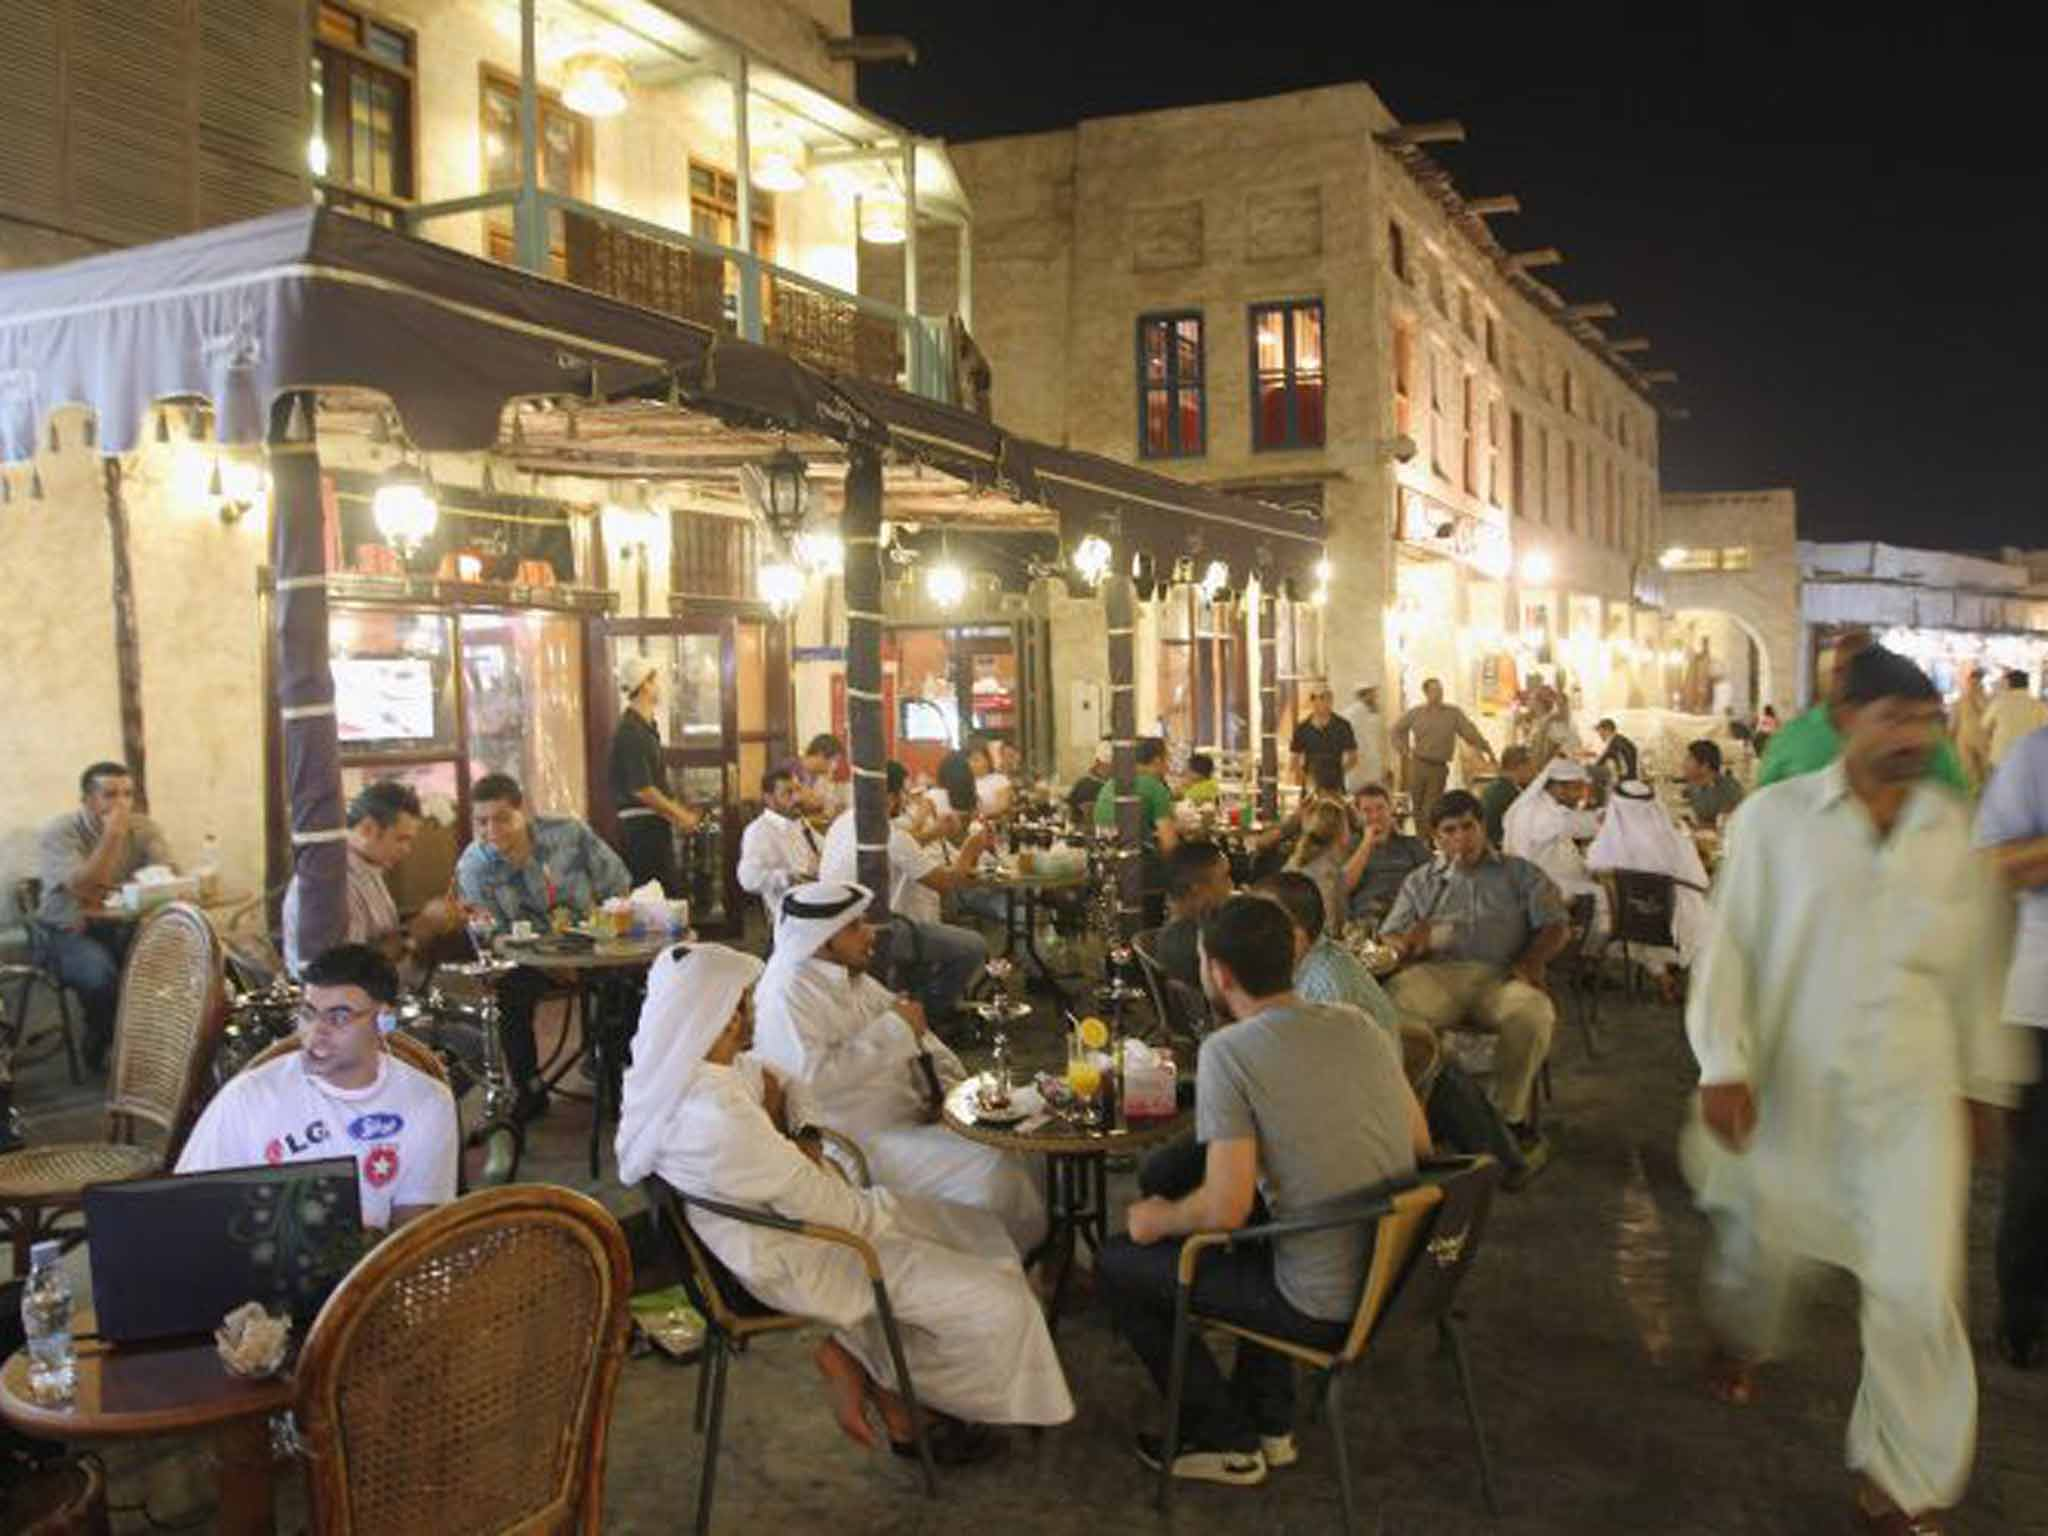 Doha travel tips: Where to go and what to see in 48 hours | The